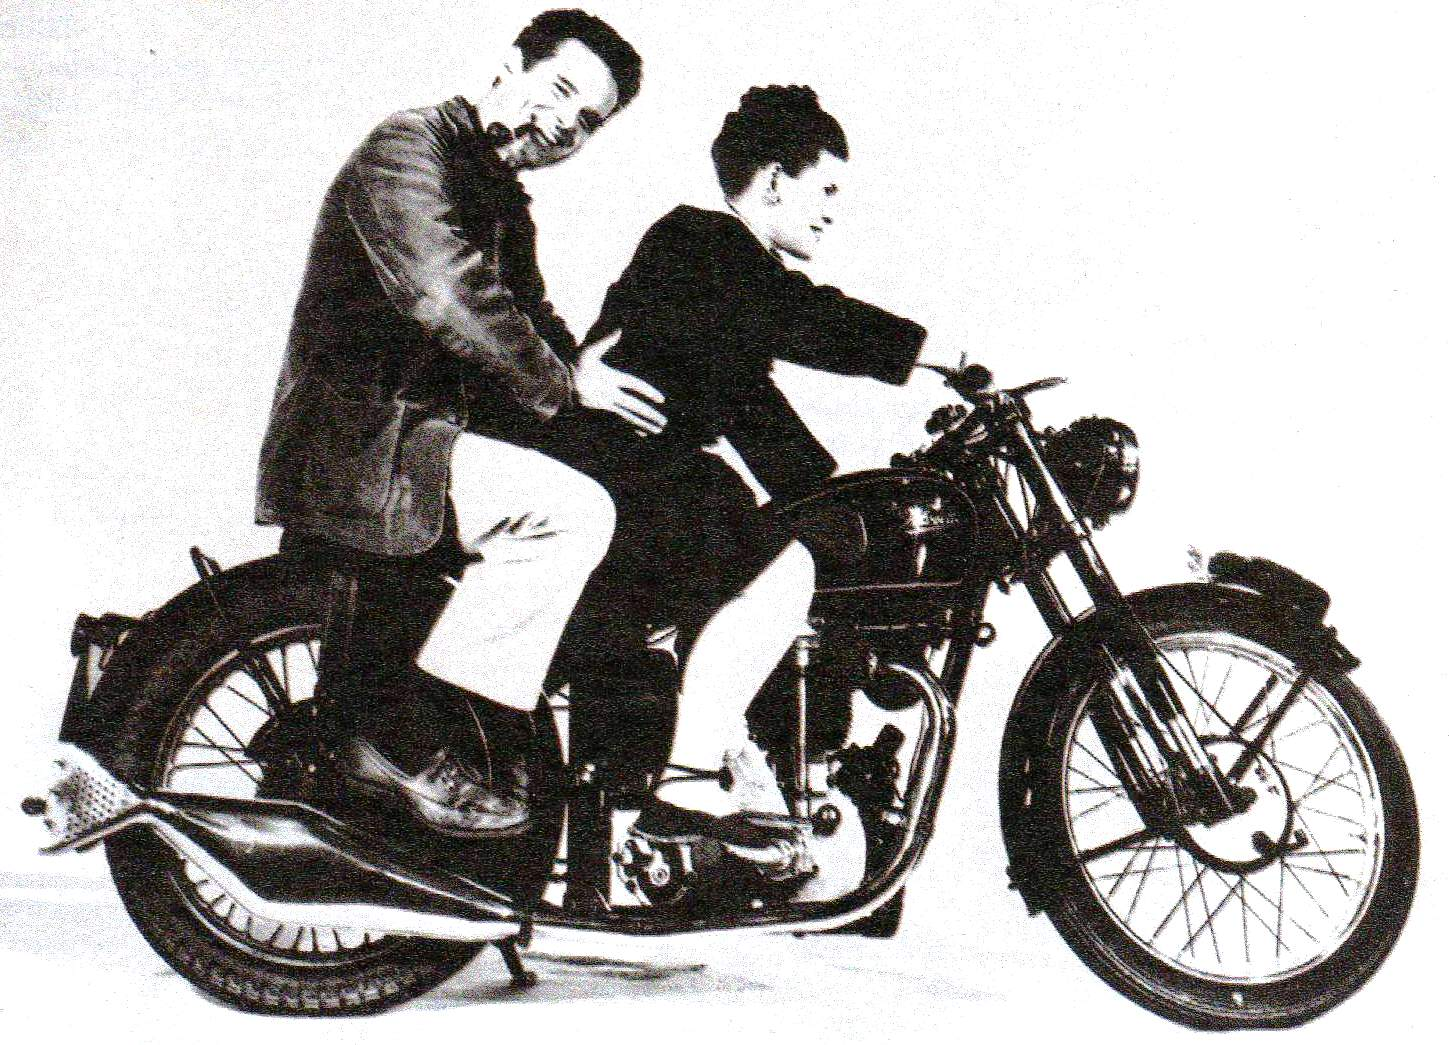 motorcycle 74 charles ray eames on motorcycle. Black Bedroom Furniture Sets. Home Design Ideas